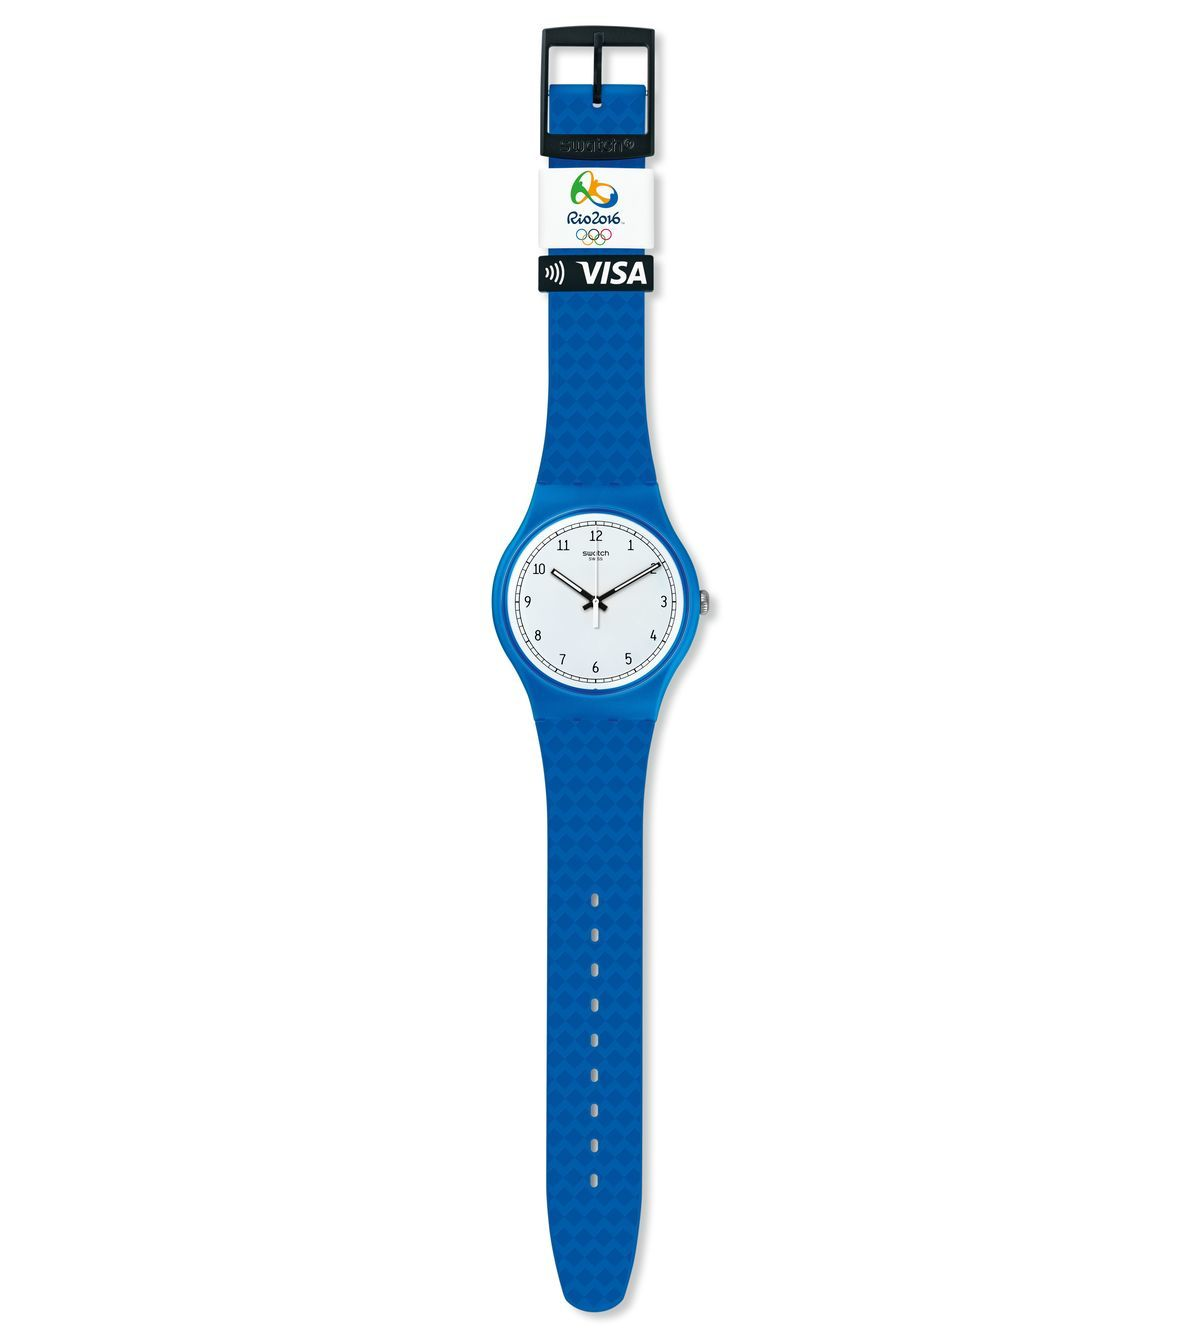 SWATCH BELLAMY SKY BLUE - SVIS100-1100